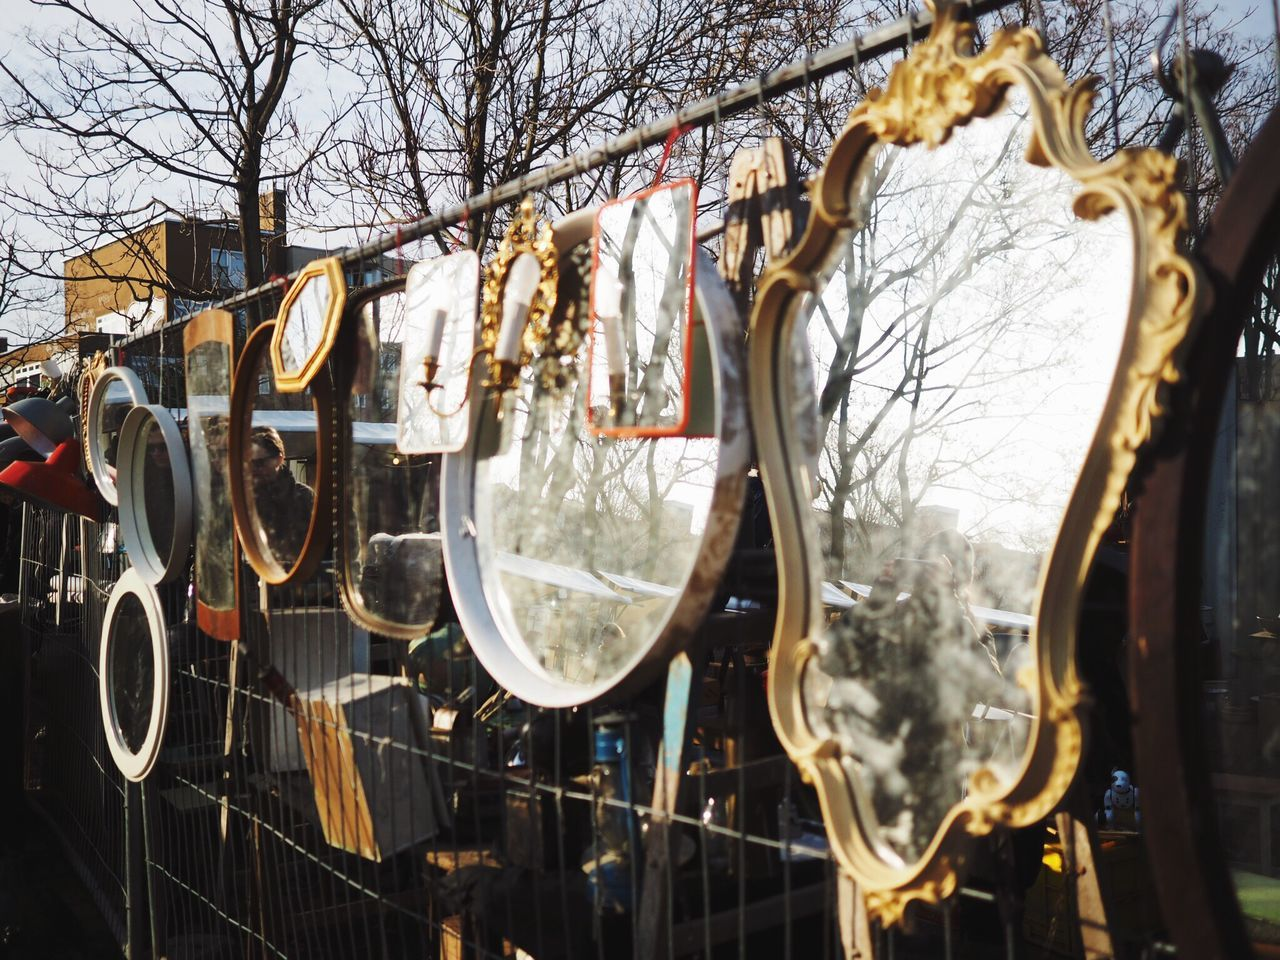 Music Arts Culture And Entertainment Variation No People Tree Outdoors Musical Instrument Day Mirror Mirrors Reflection Flea Markets